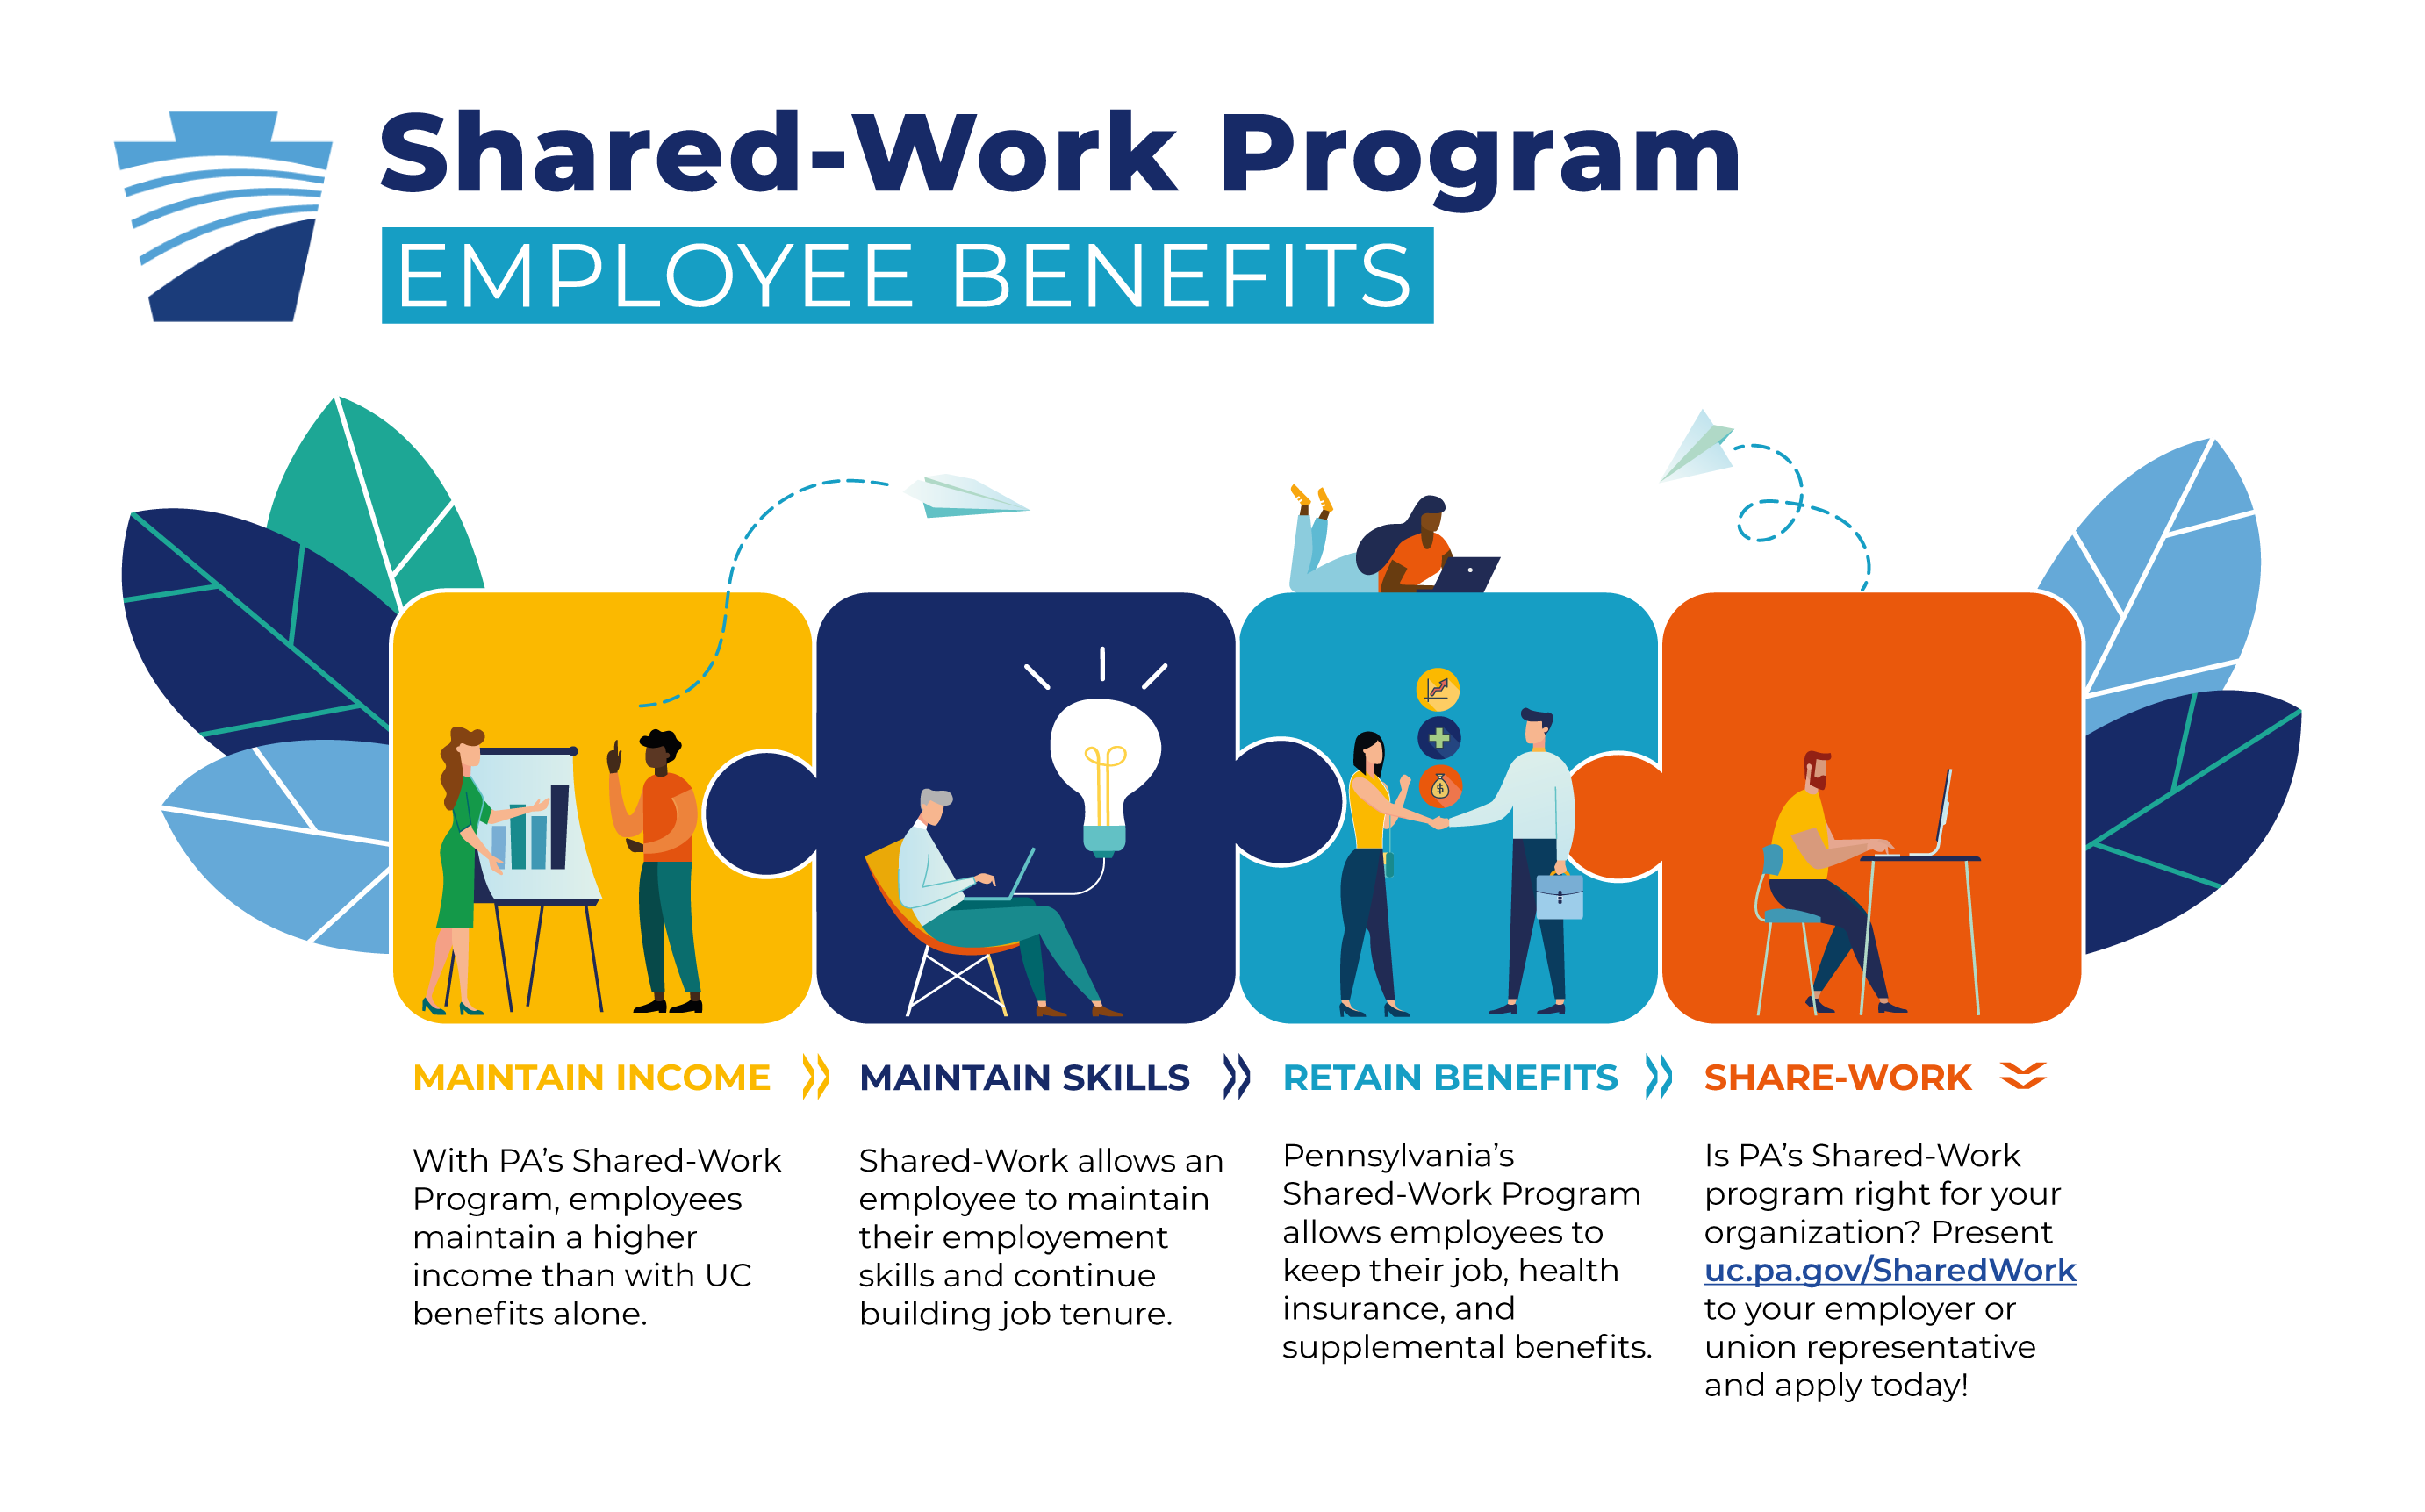 Graphic of Shared-work employee benefits, text included above